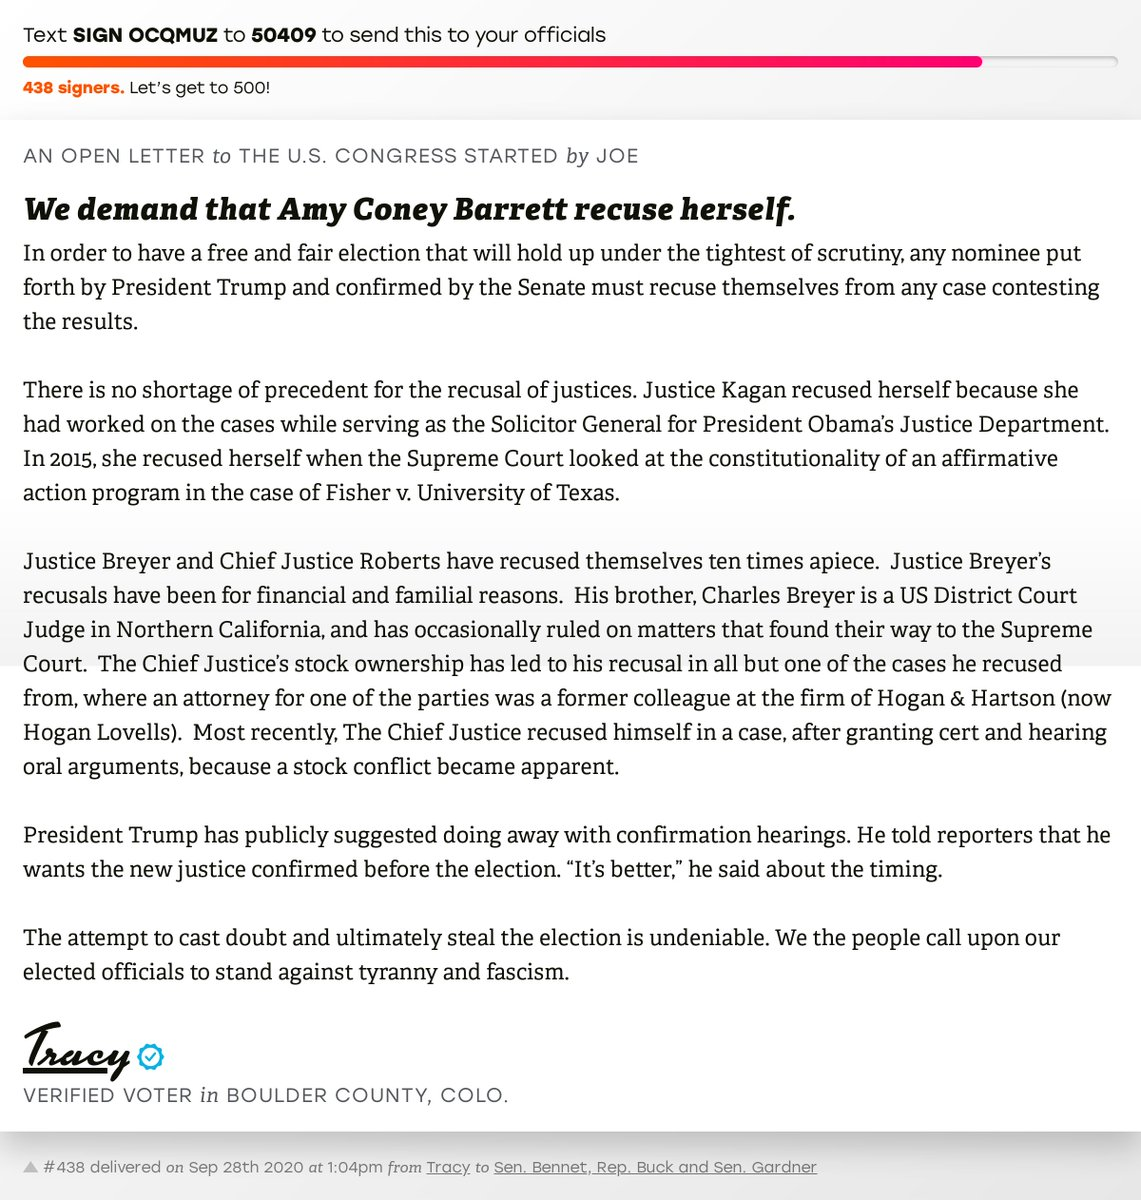 """🖋 Sign """"We demand that Amy Coney Barrett recuse herself."""" and I'll deliver a copy to your officials: https://t.co/pURy20HfoG  📨 No. 438 is from Tracy to @SenatorBennet, @RepKenBuck and @SenCoryGardner #CO04 #COpolitics https://t.co/j8bzHDyNmL"""